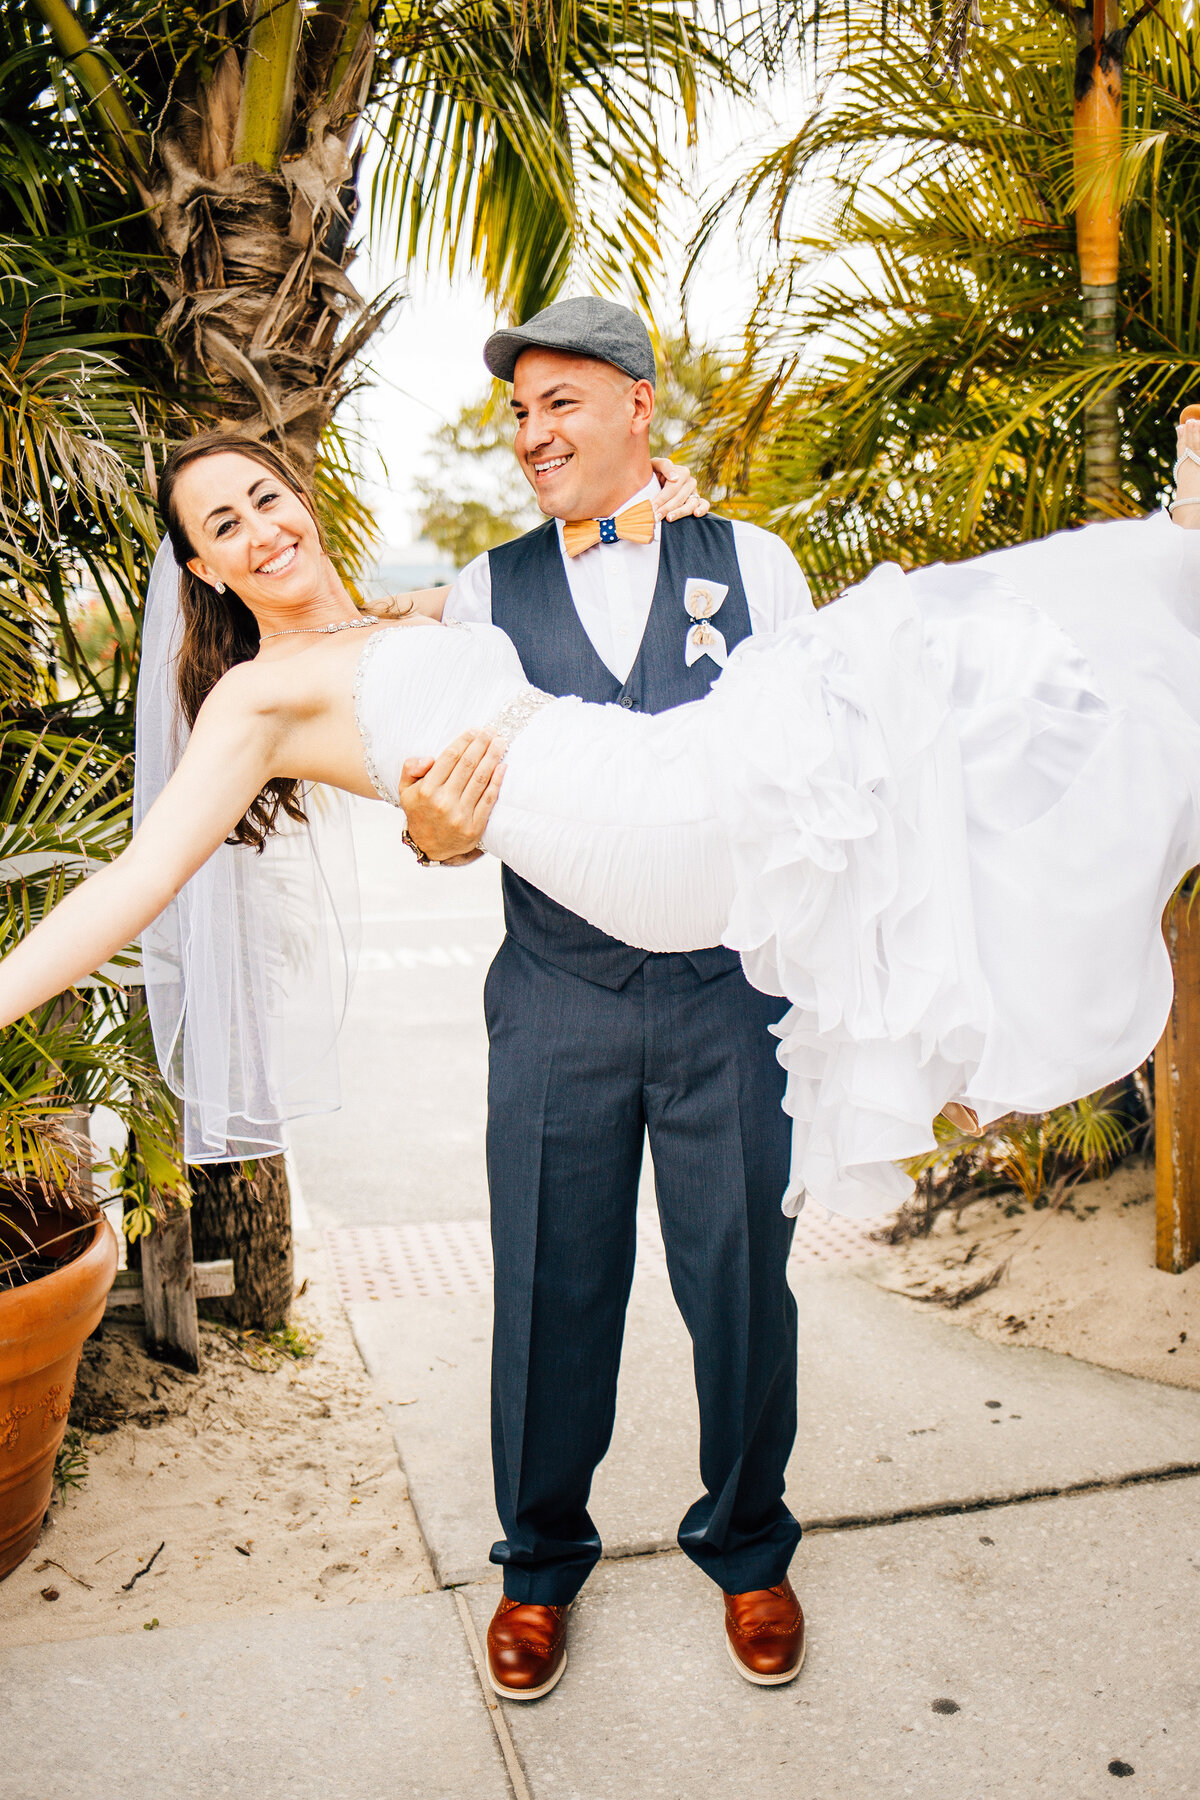 Kimberly_Hoyle_Photography_Marrero_Millikens_Reef_Wedding-73